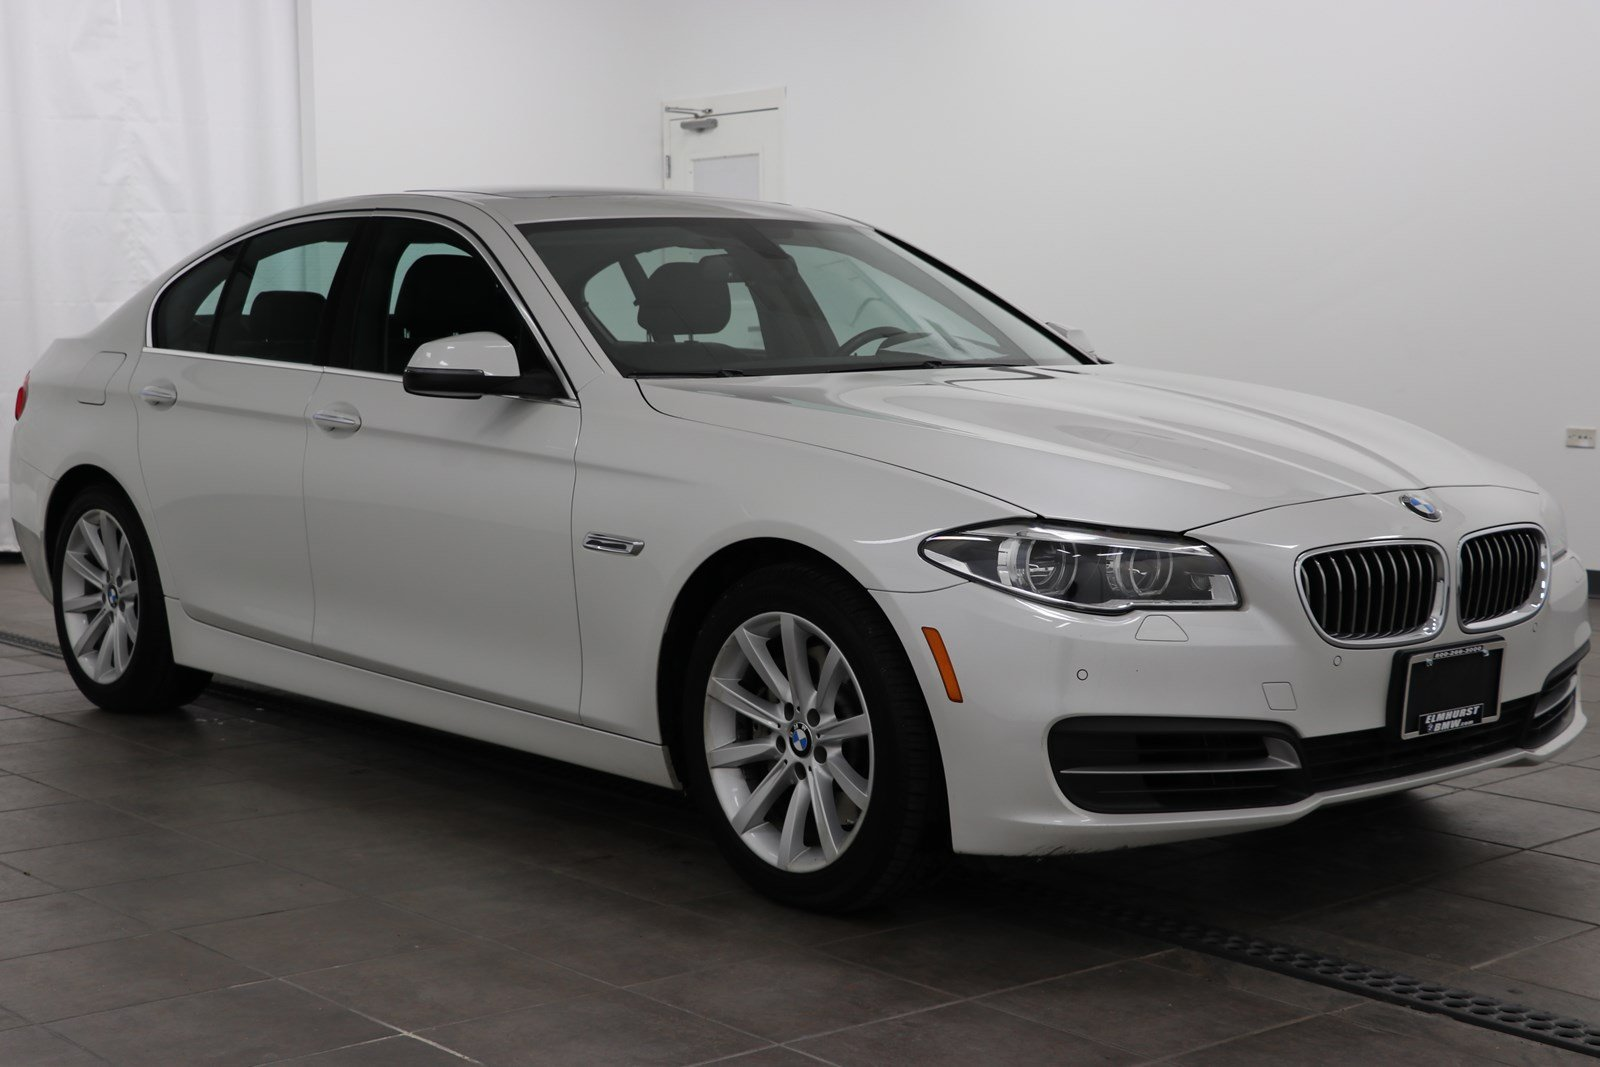 Pre Owned 2014 Bmw 5 Series 535i Xdrive 4dr Car In Elmhurst B8181a